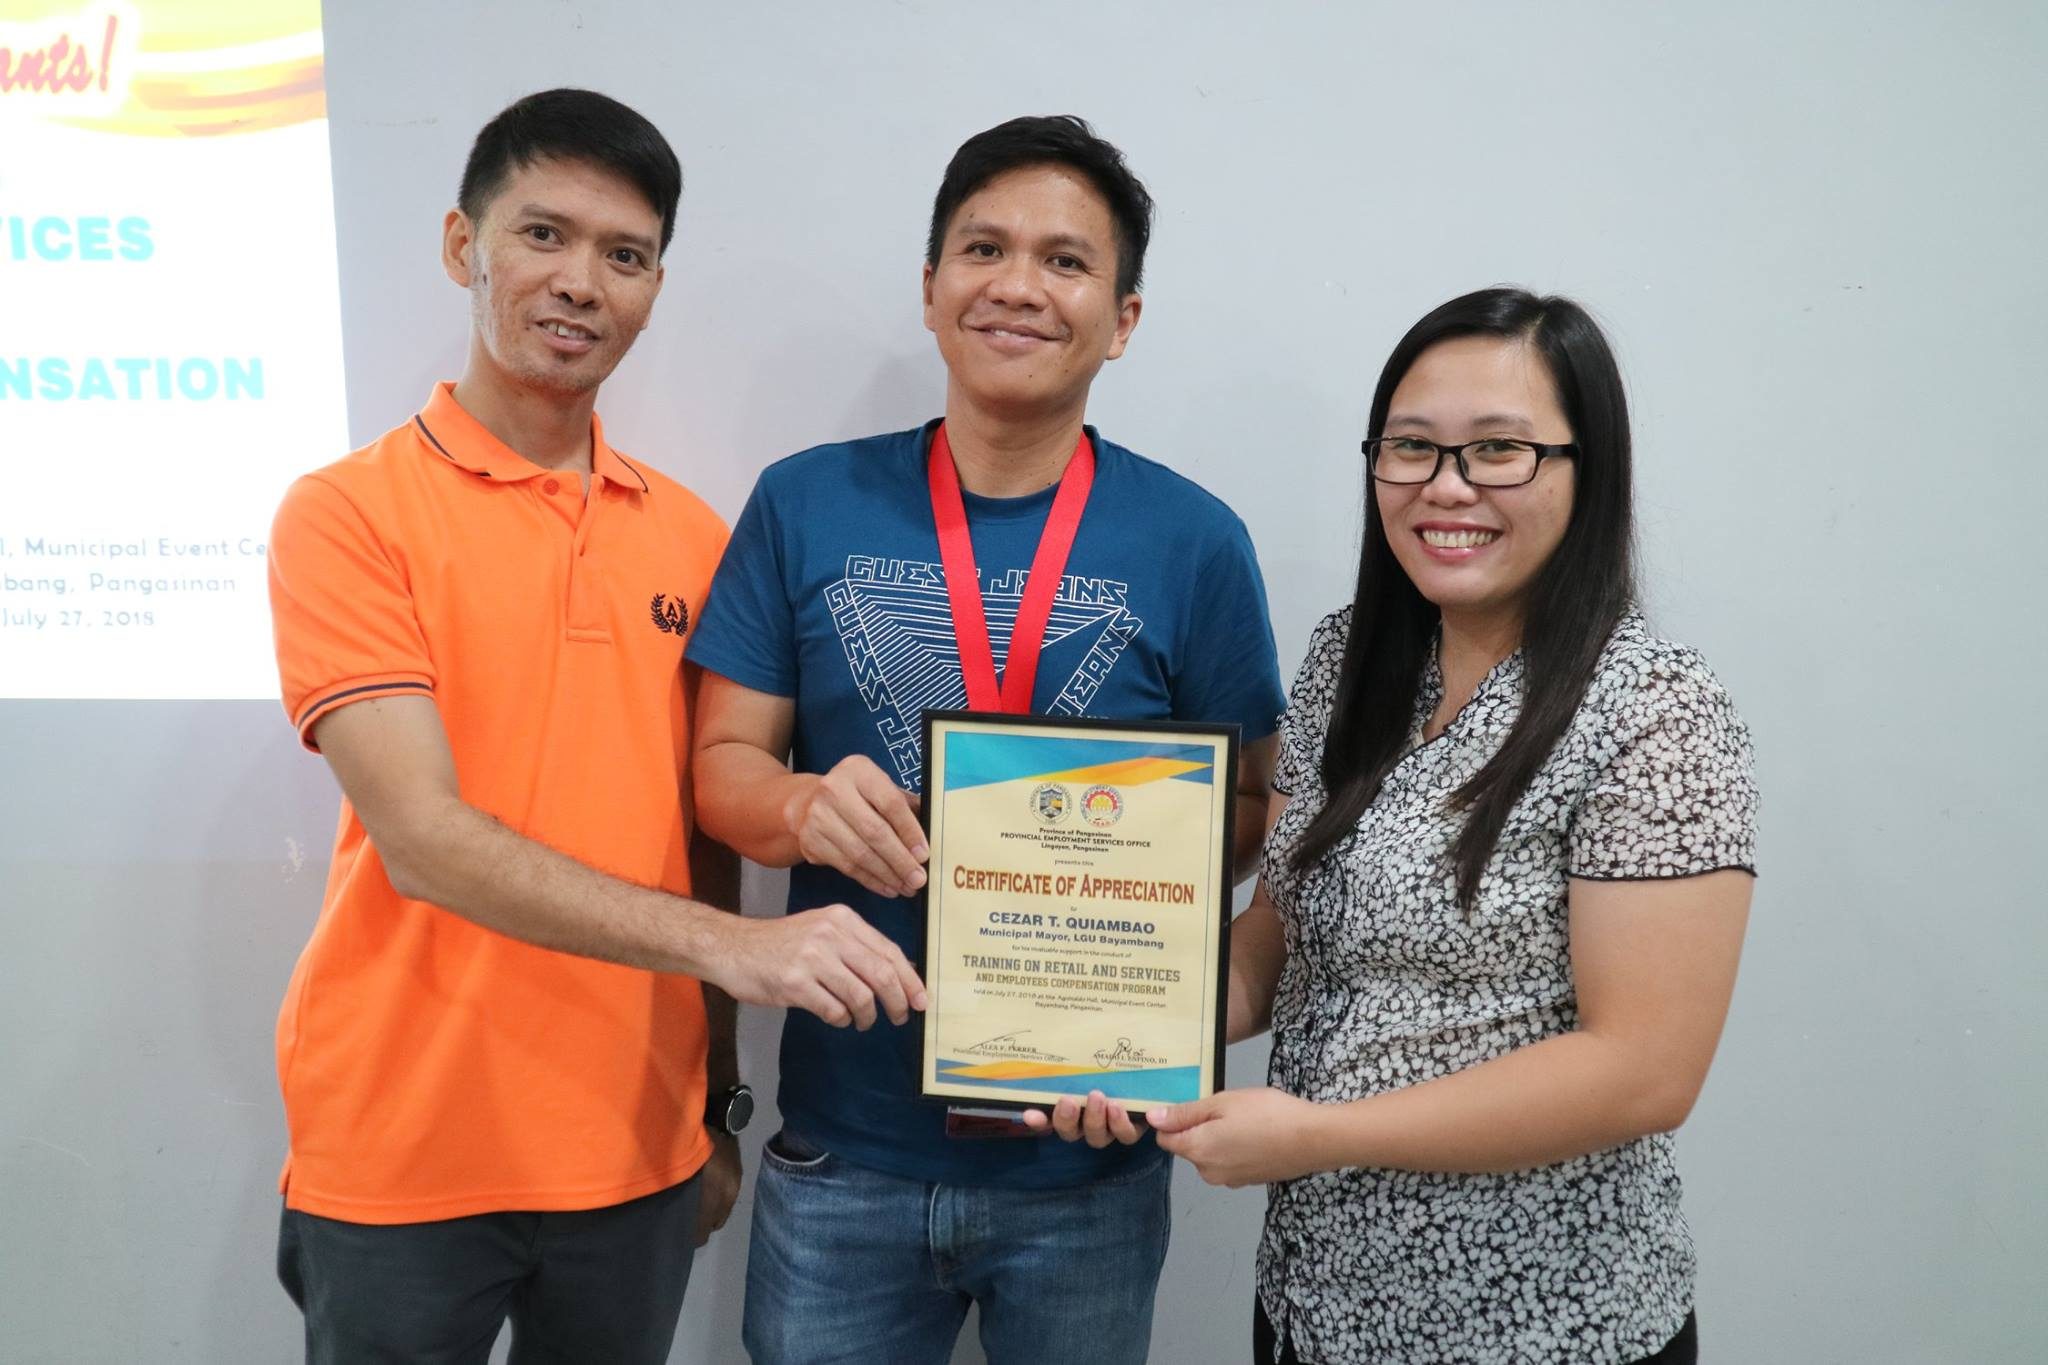 Pangasinan PESO conducts Retail and Services Training